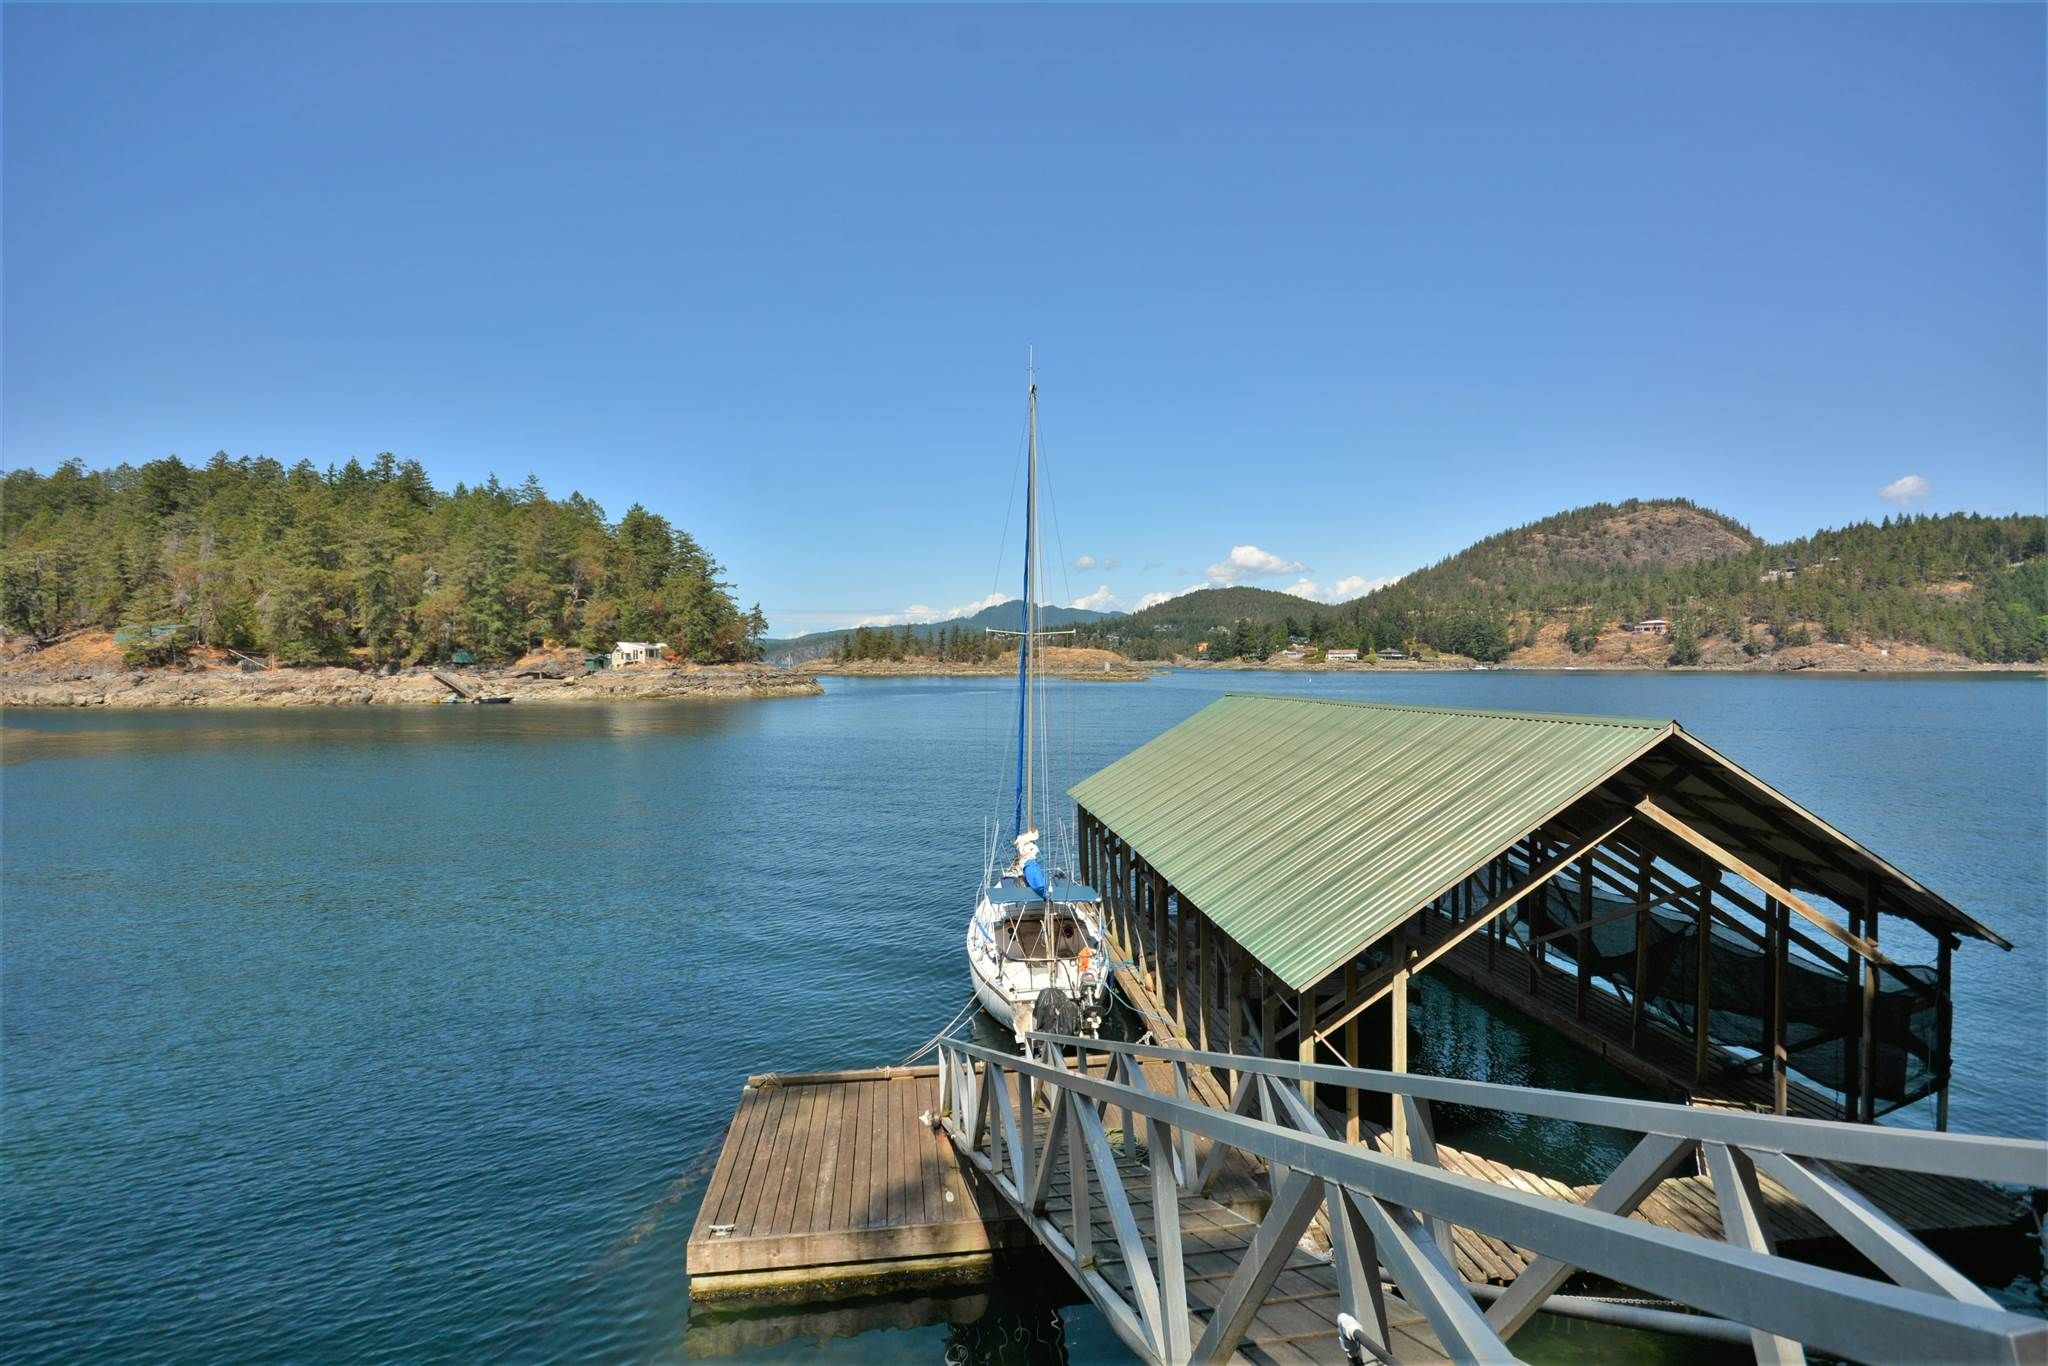 Main Photo: 4067 FRANCIS PENINSULA Road in Madeira Park: Pender Harbour Egmont House for sale (Sunshine Coast)  : MLS®# R2604603